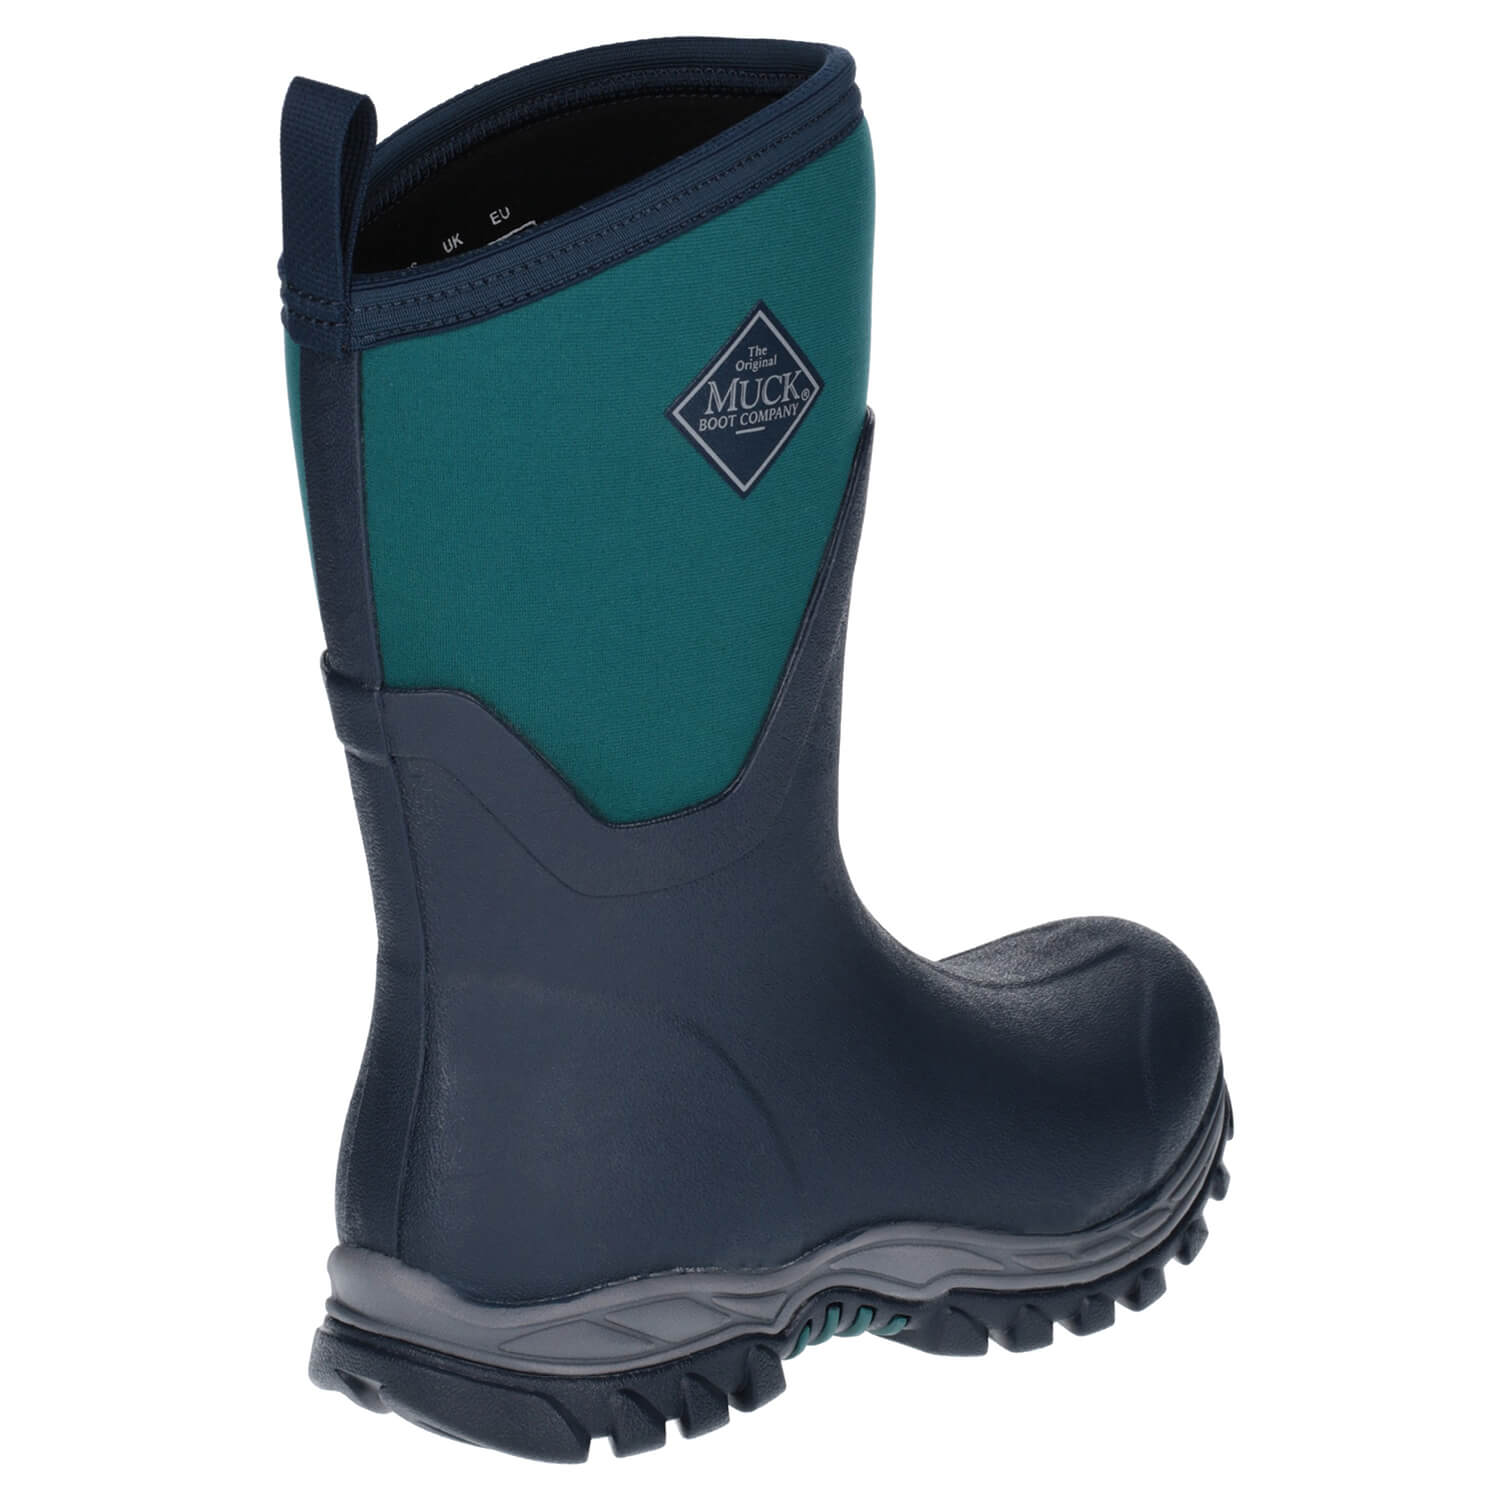 Muck Boot Women S Arctic Sport Ii Mid Boots In Teal Navy